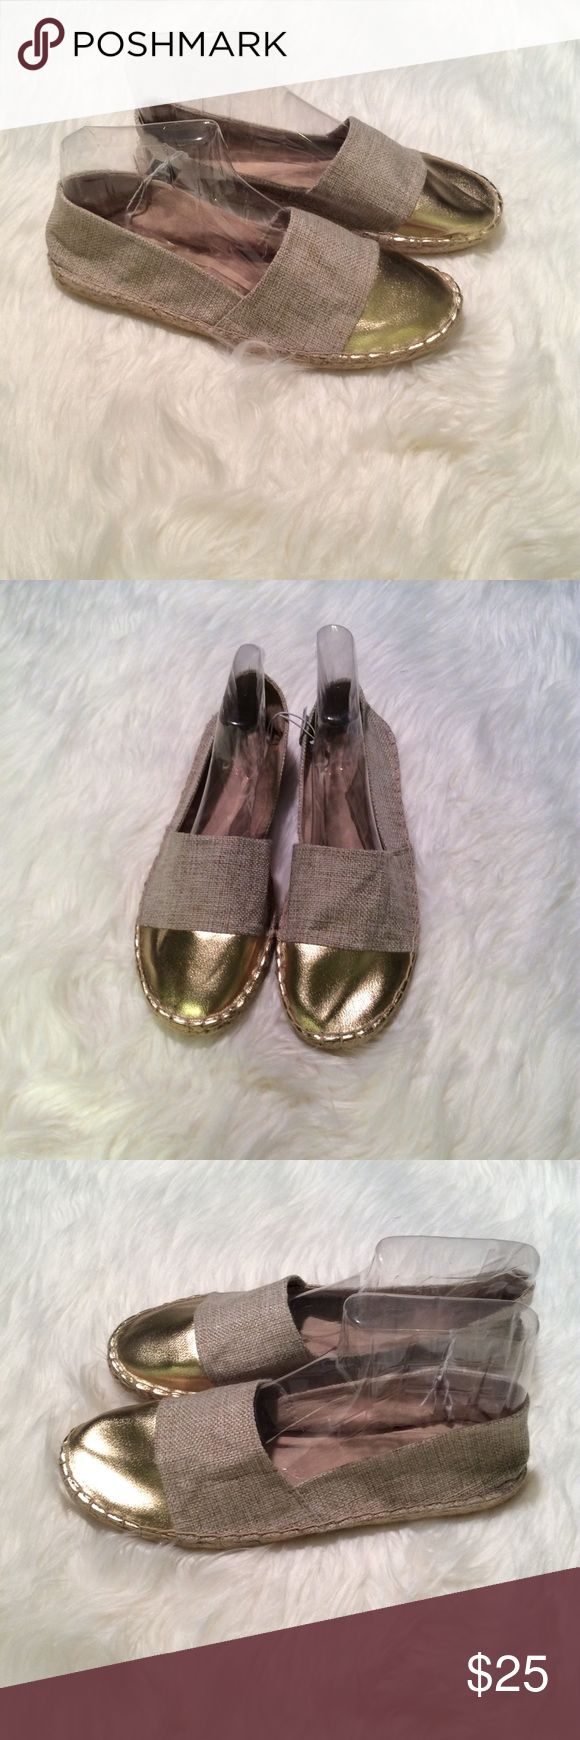 Gap Gold Tip Espadrilles New with tags! GAP Shoes Espadrilles